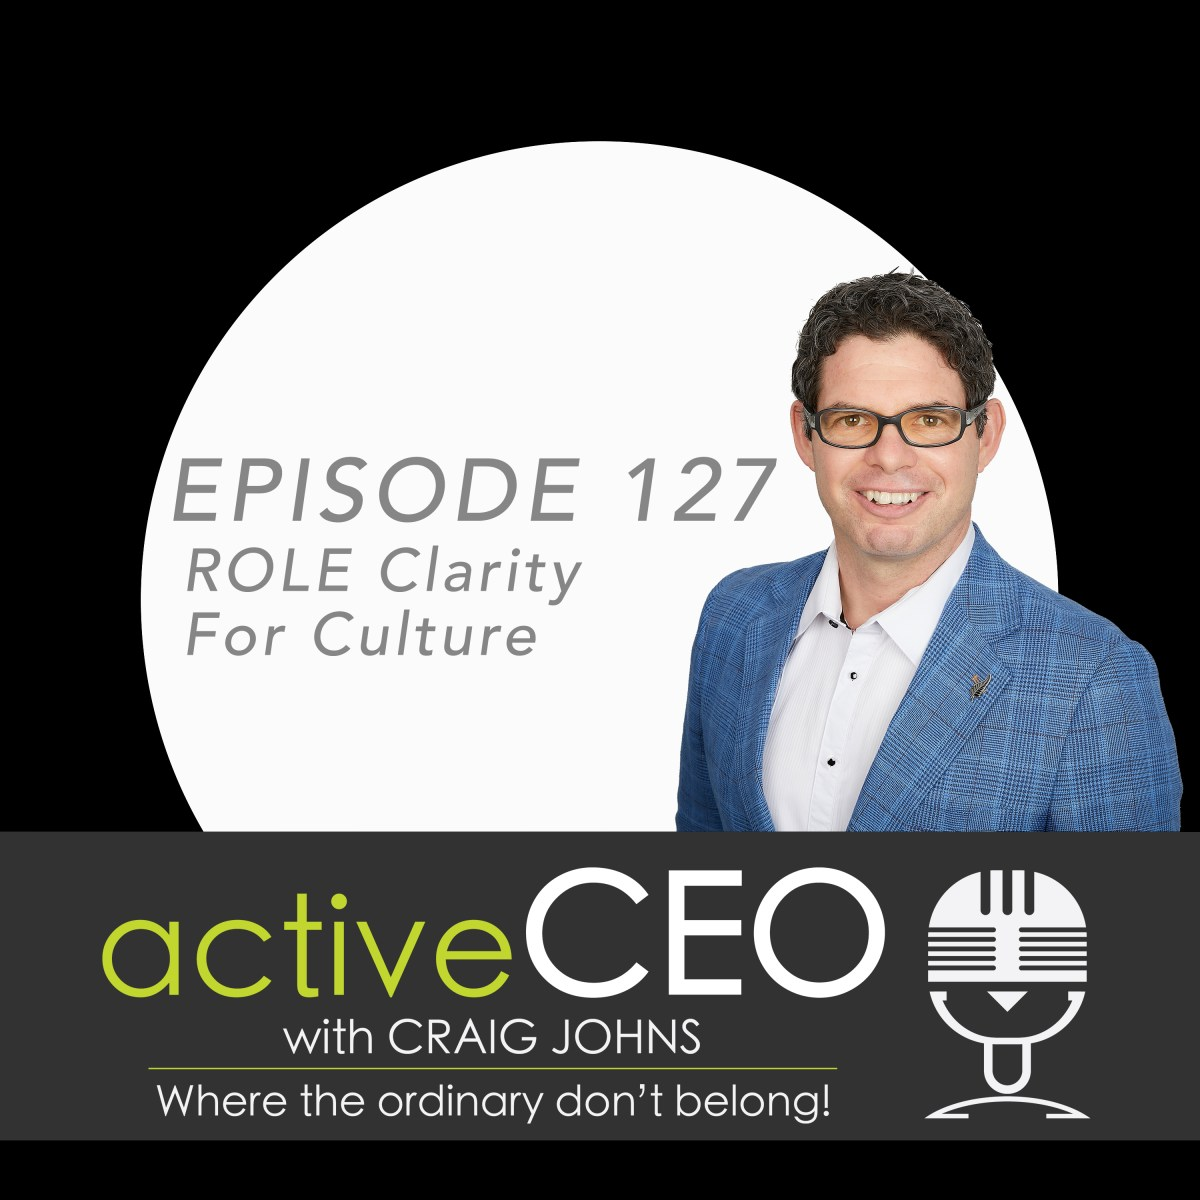 active CEO Podcast 127 Craig Johns Role Clarity For Culture